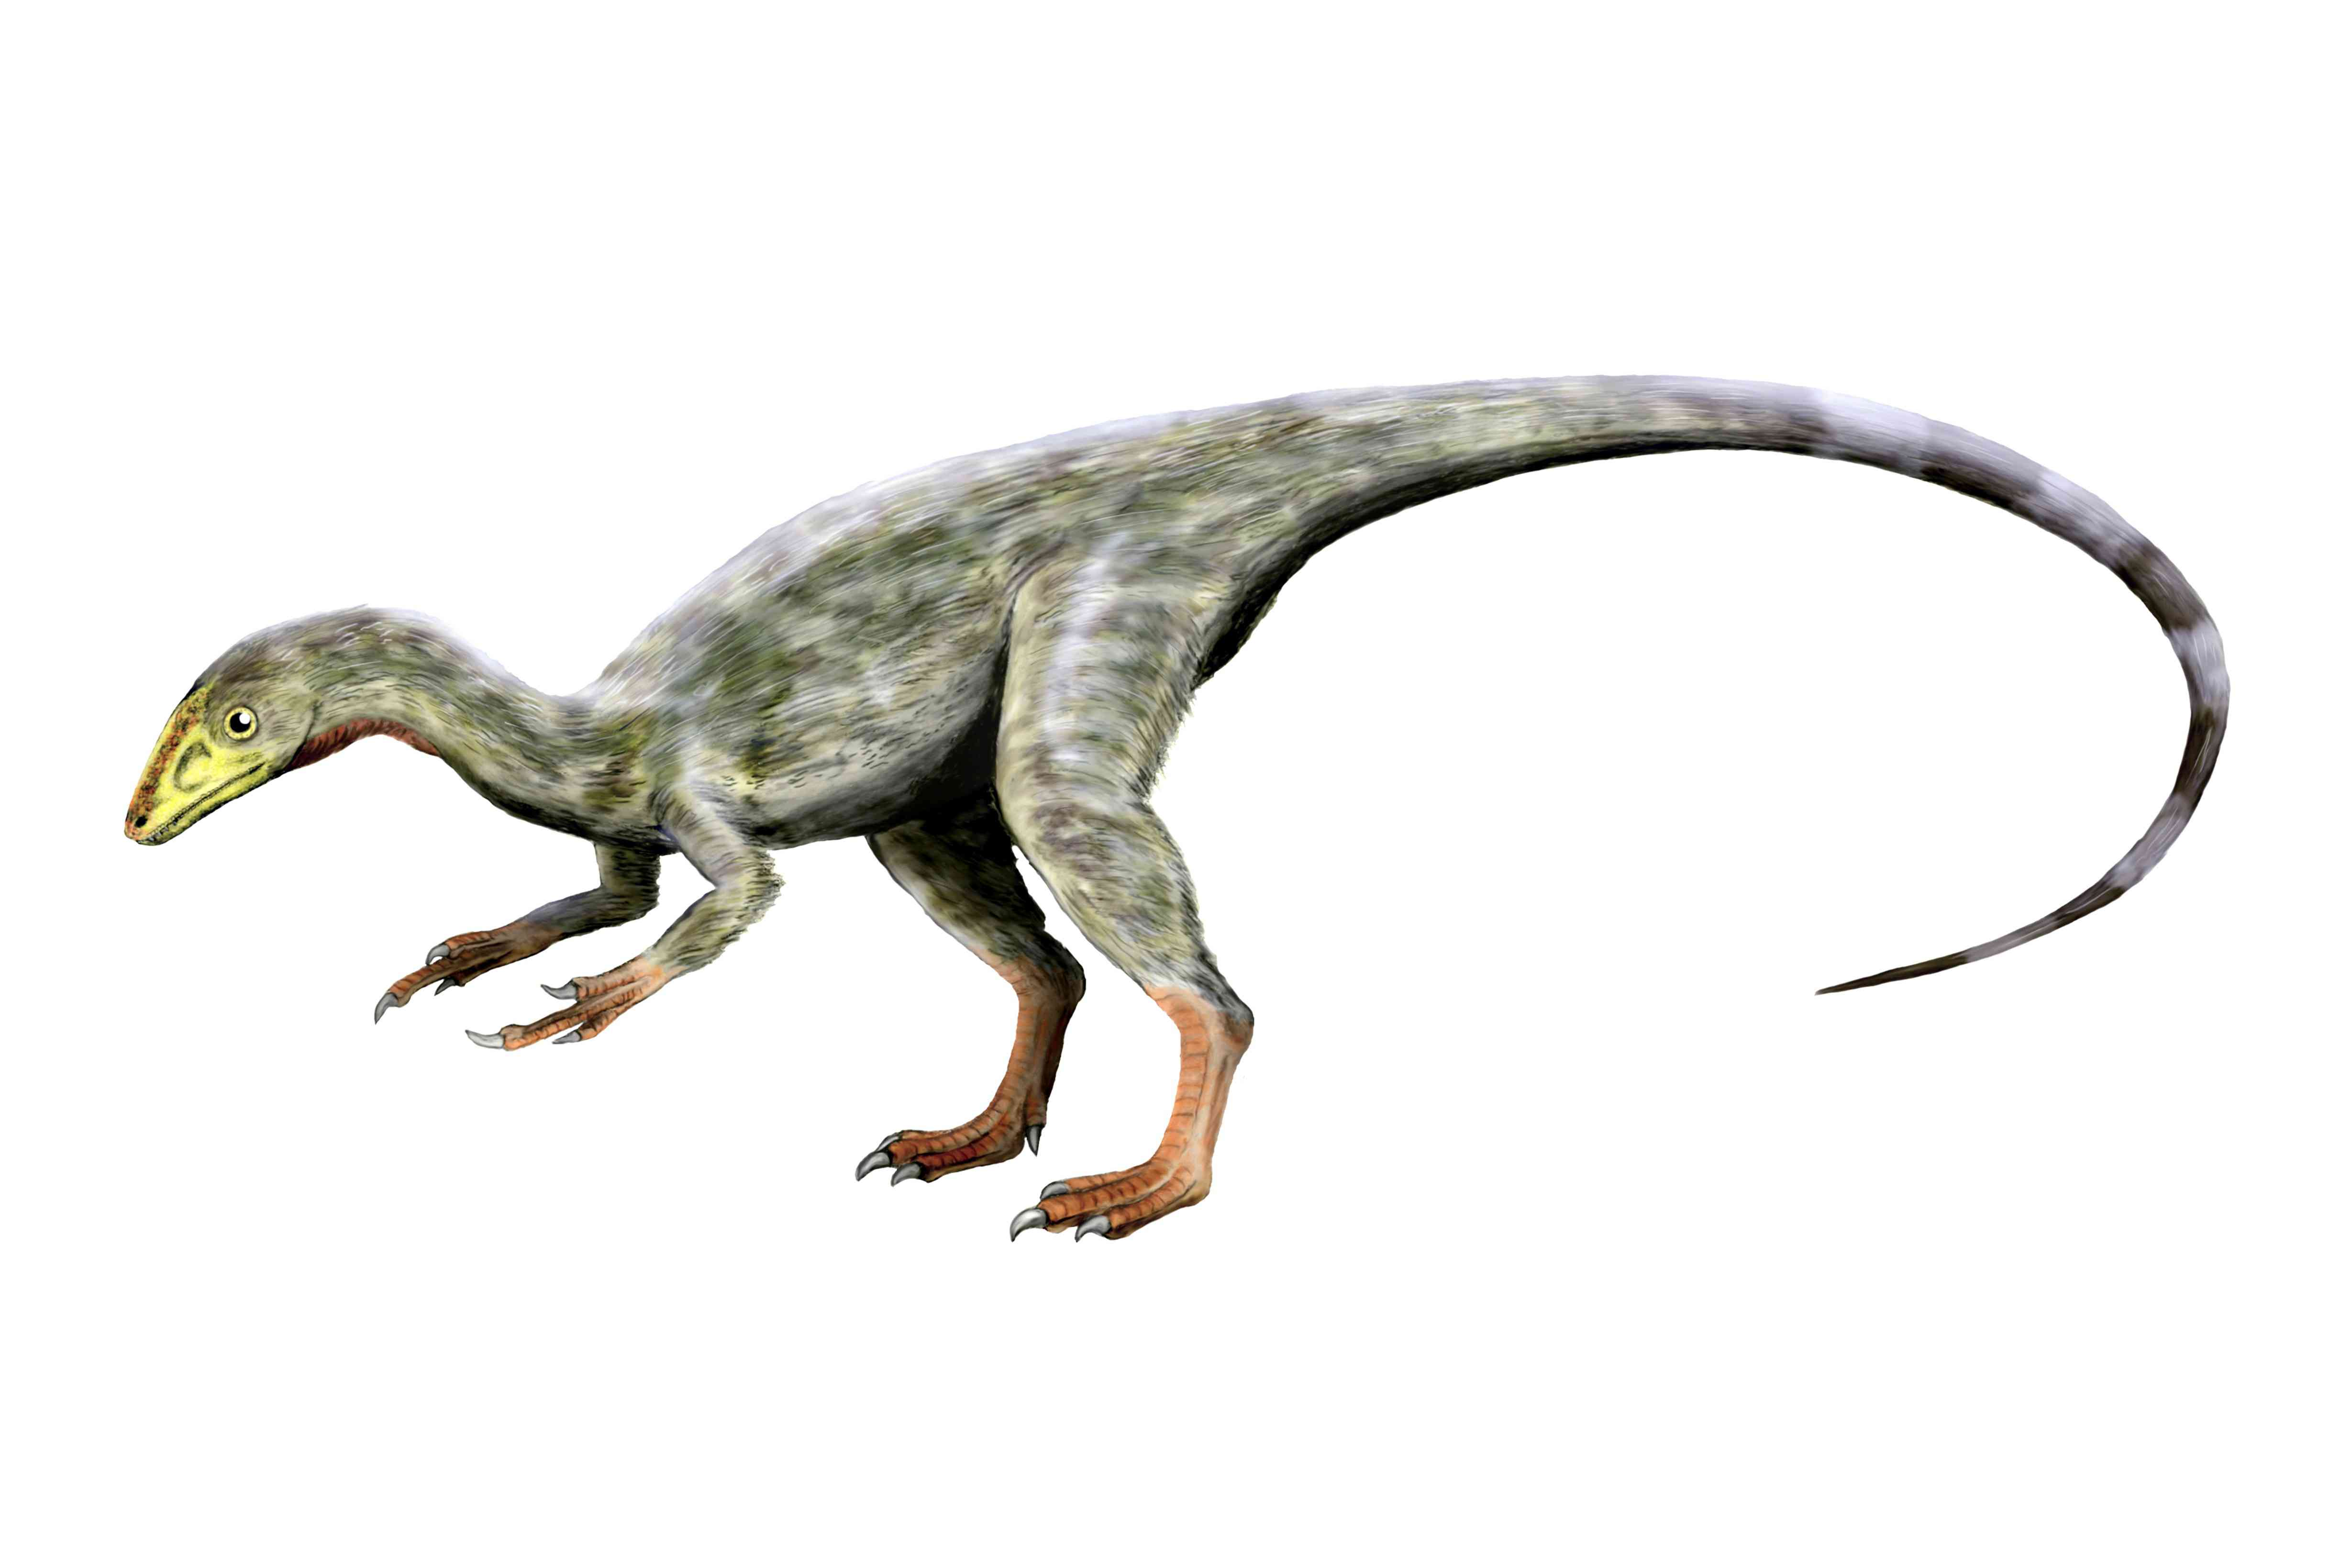 An artist rendering of a thoughtful compsognathus